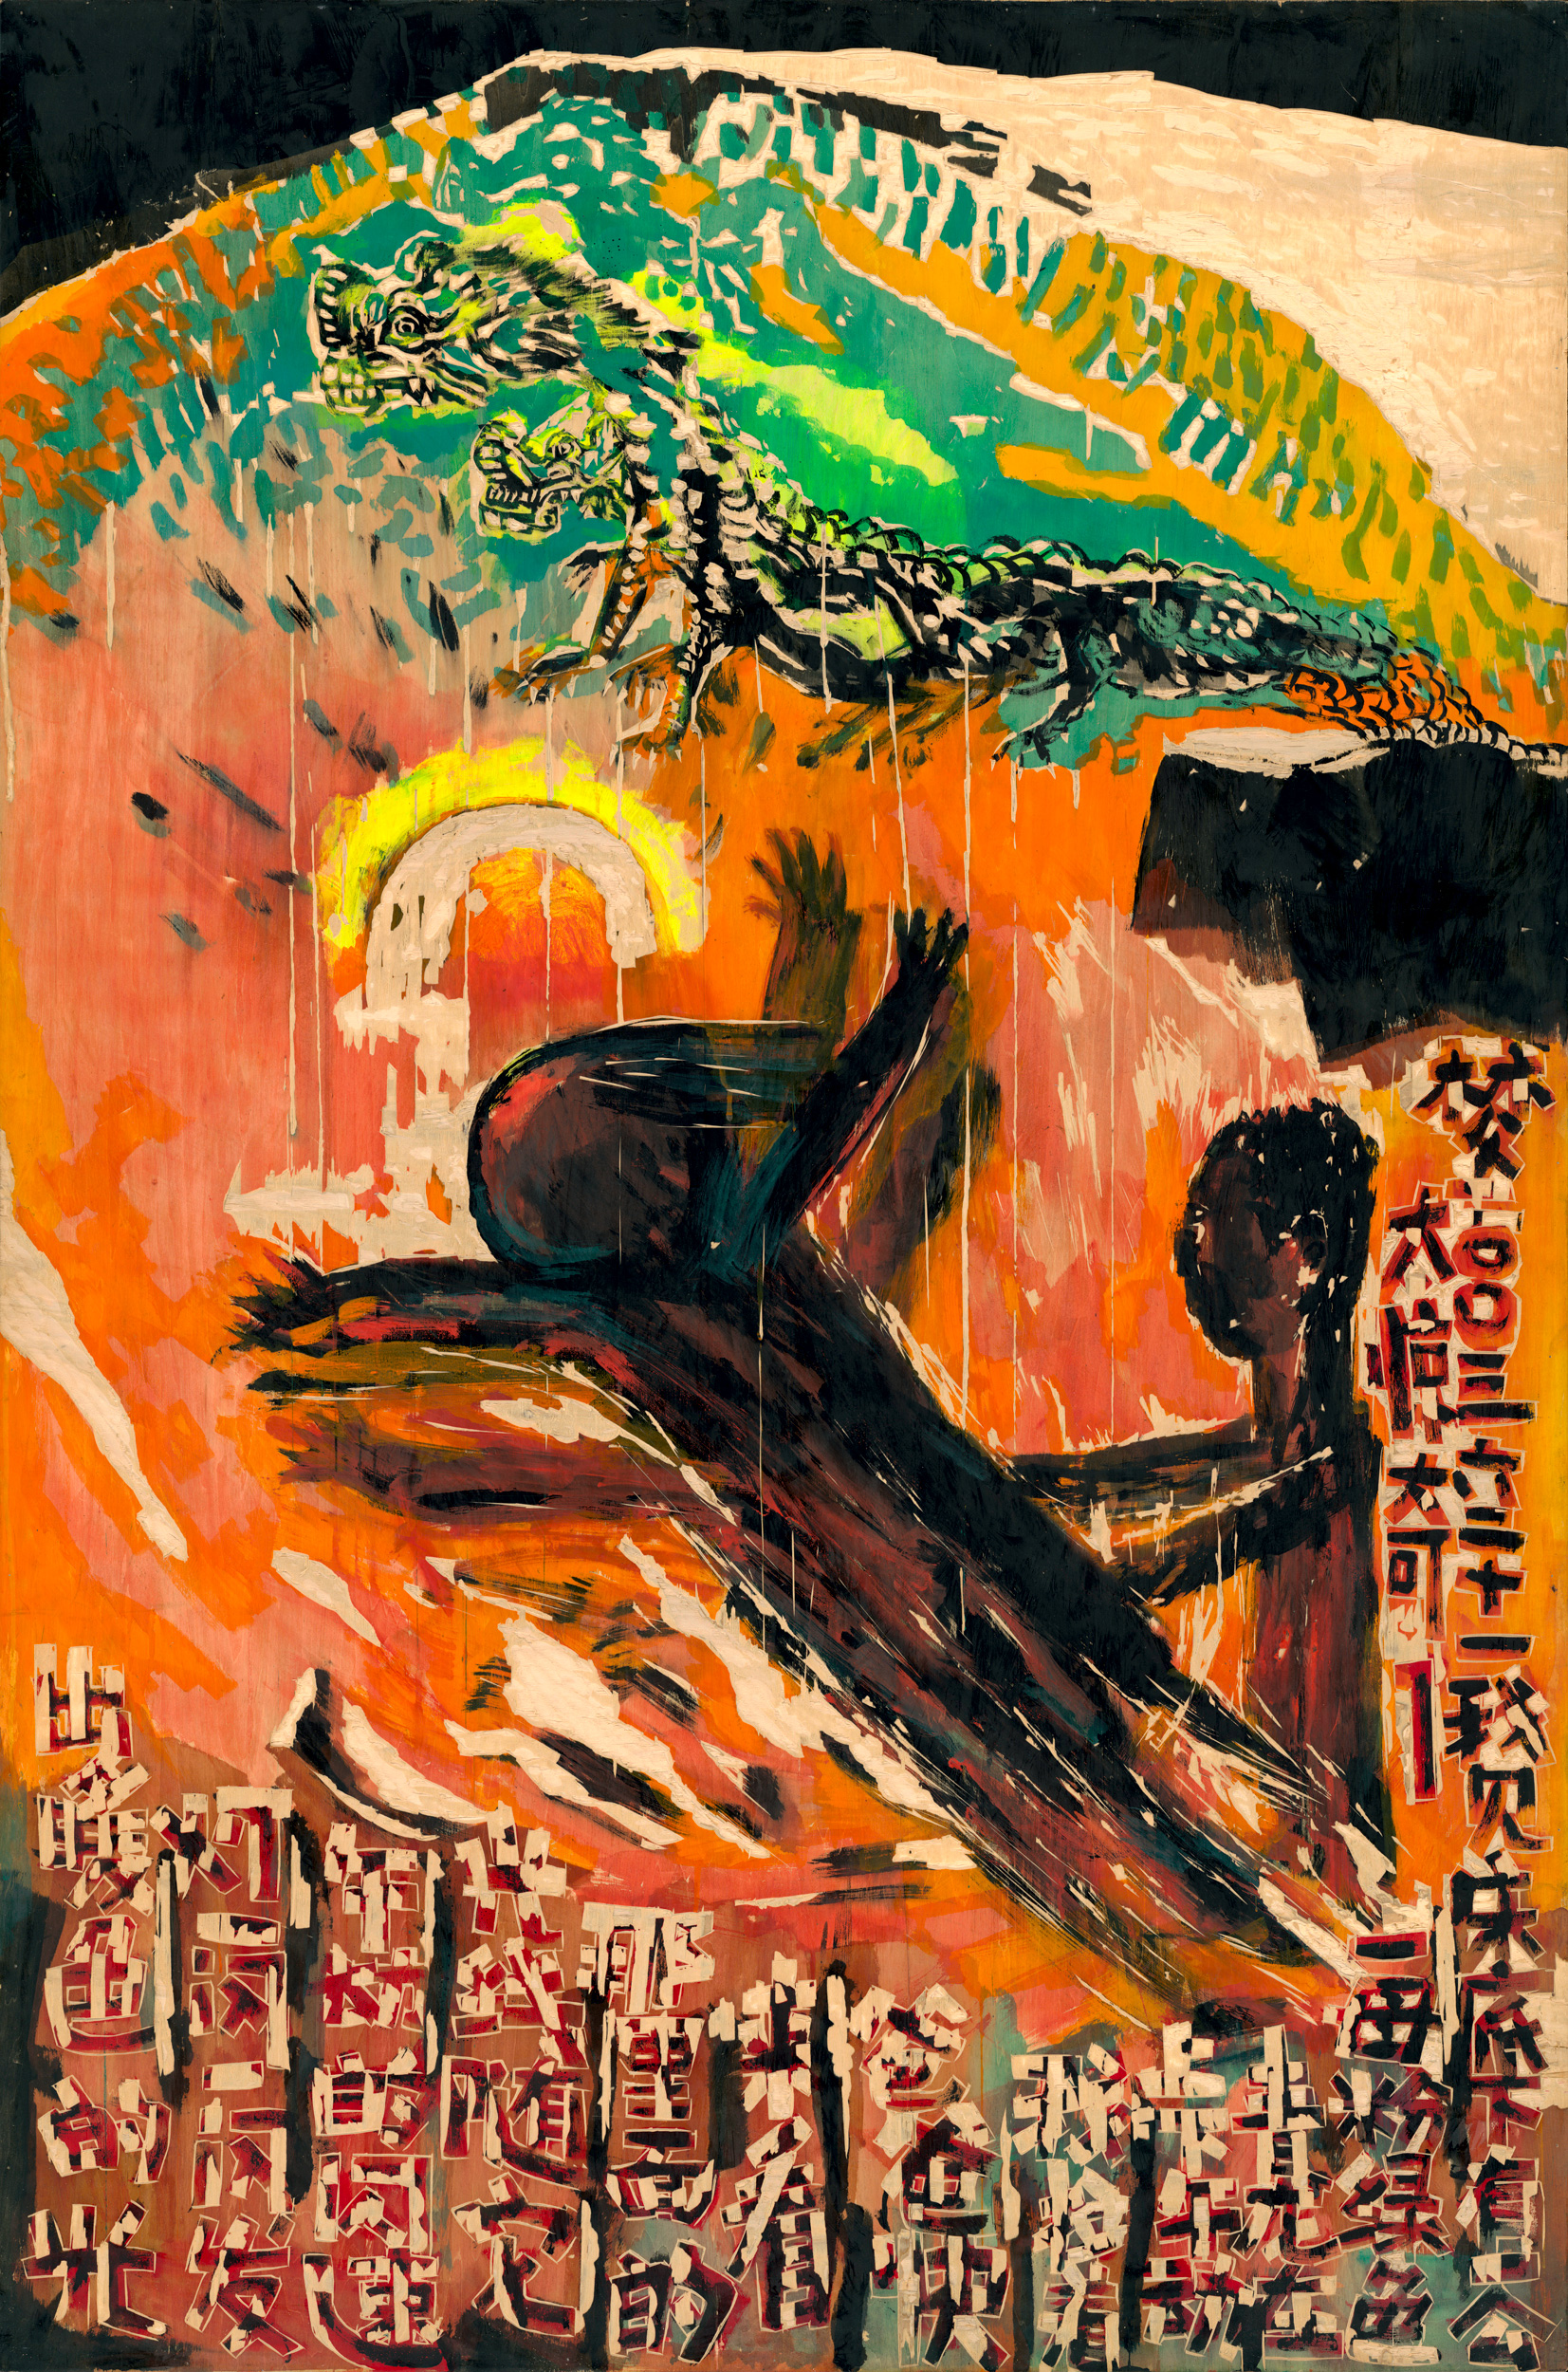 Chen Haiyan, Glimpsing the Green Dragon, 2003; coloured ink on board| Undersong: Secrets, Dreams, Truths, and Power| Tao Aimin, Chen Haiyan| INK Studio| STIR